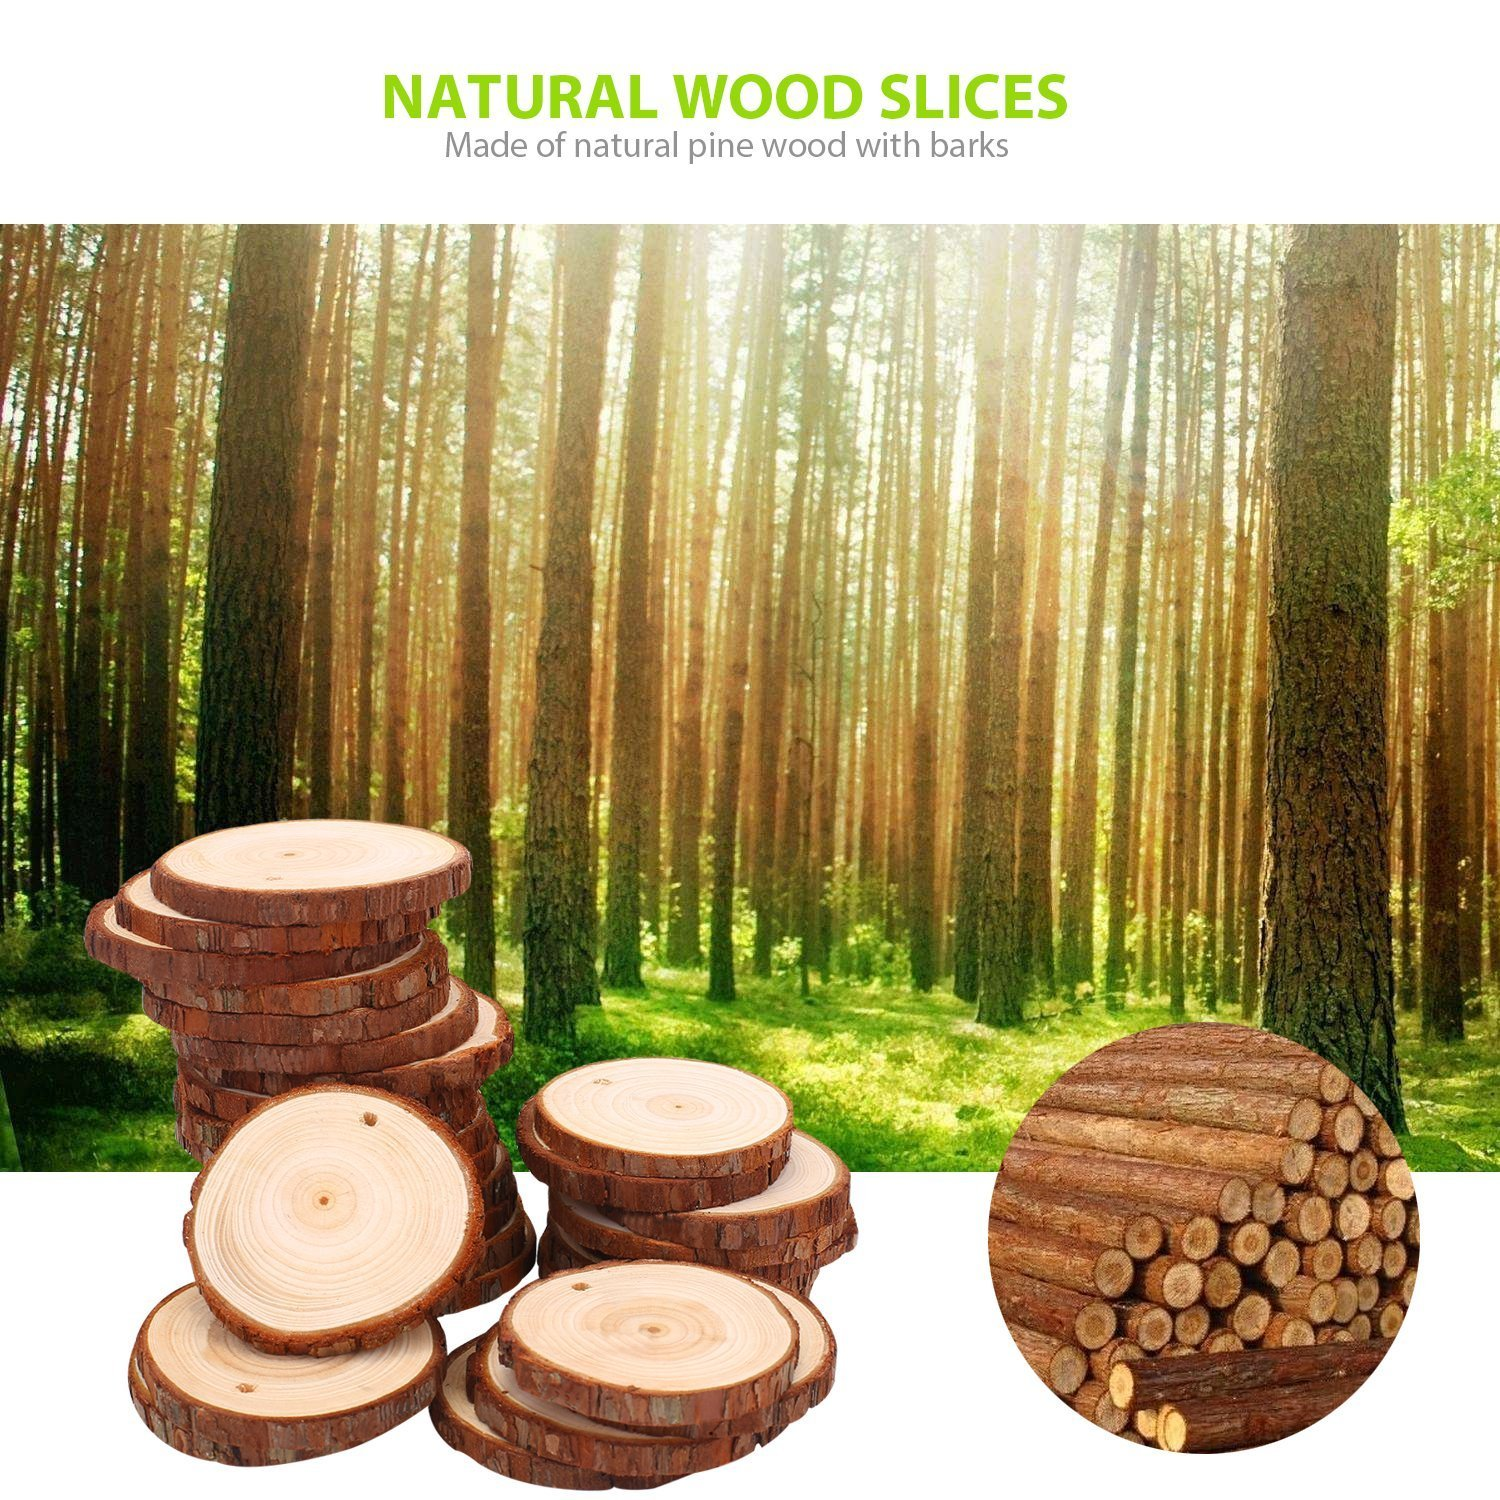 30pcs 2.75 3.14 Natural Wood Slices Craft Wood kit Unfinished Predrilled with Hole Wooden Circles Great for Arts and Crafts Christmas Ornaments DIY Crafts